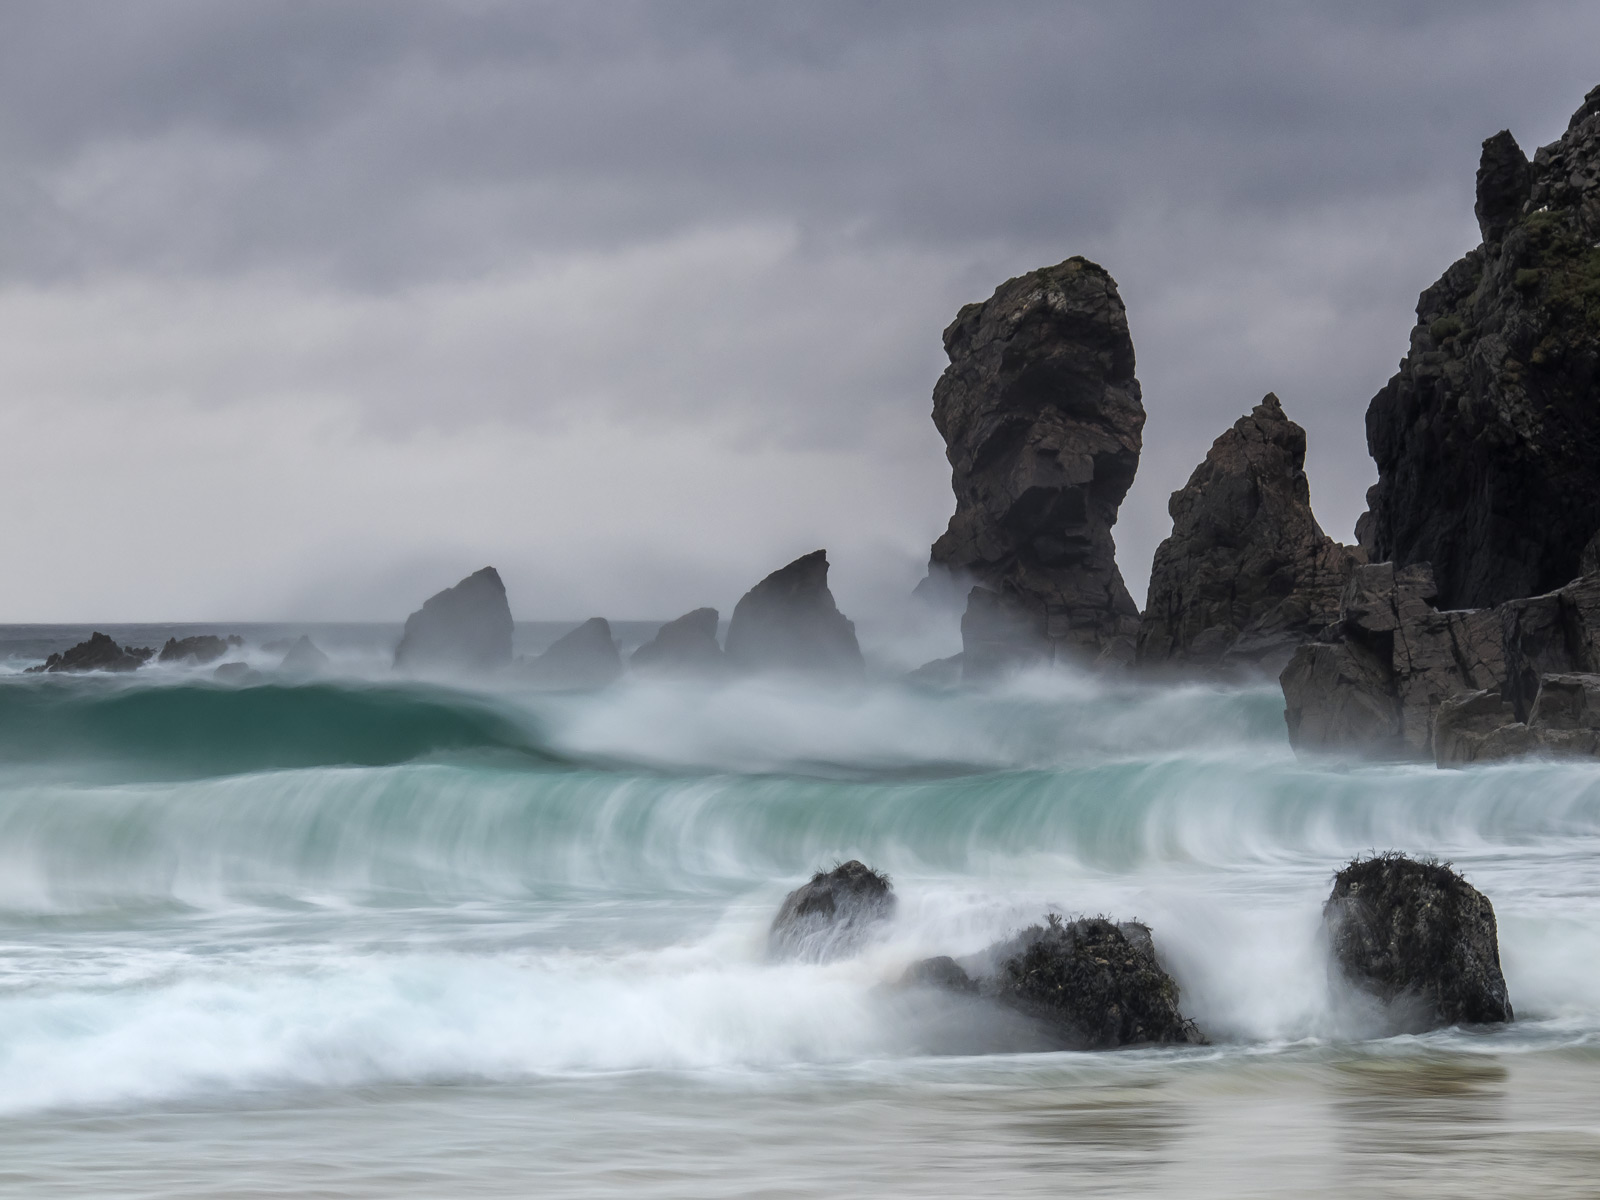 Storm Surge Dail Mhor, Dail Mhor, Lewis, Scotland, sandy, bay, rock stacks, beach, storm, turquoise, exploding, breeze, , photo